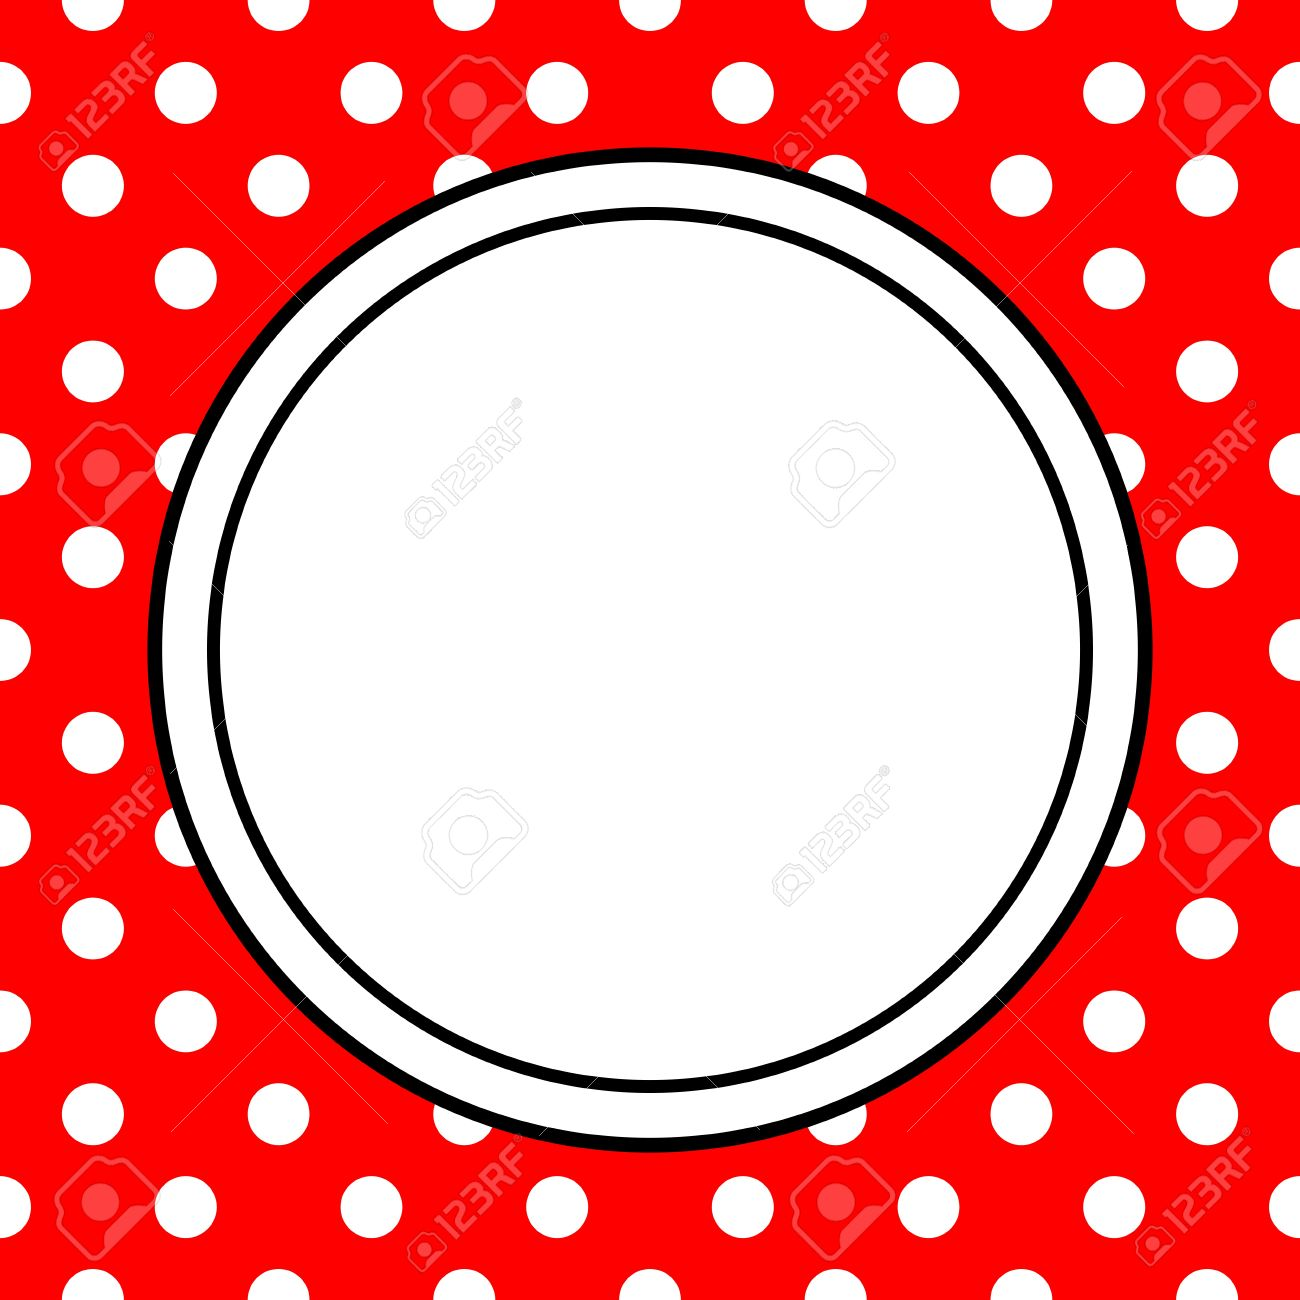 Hand Drawn Vector Frame With A Polka Dots On Red Background Royalty ...